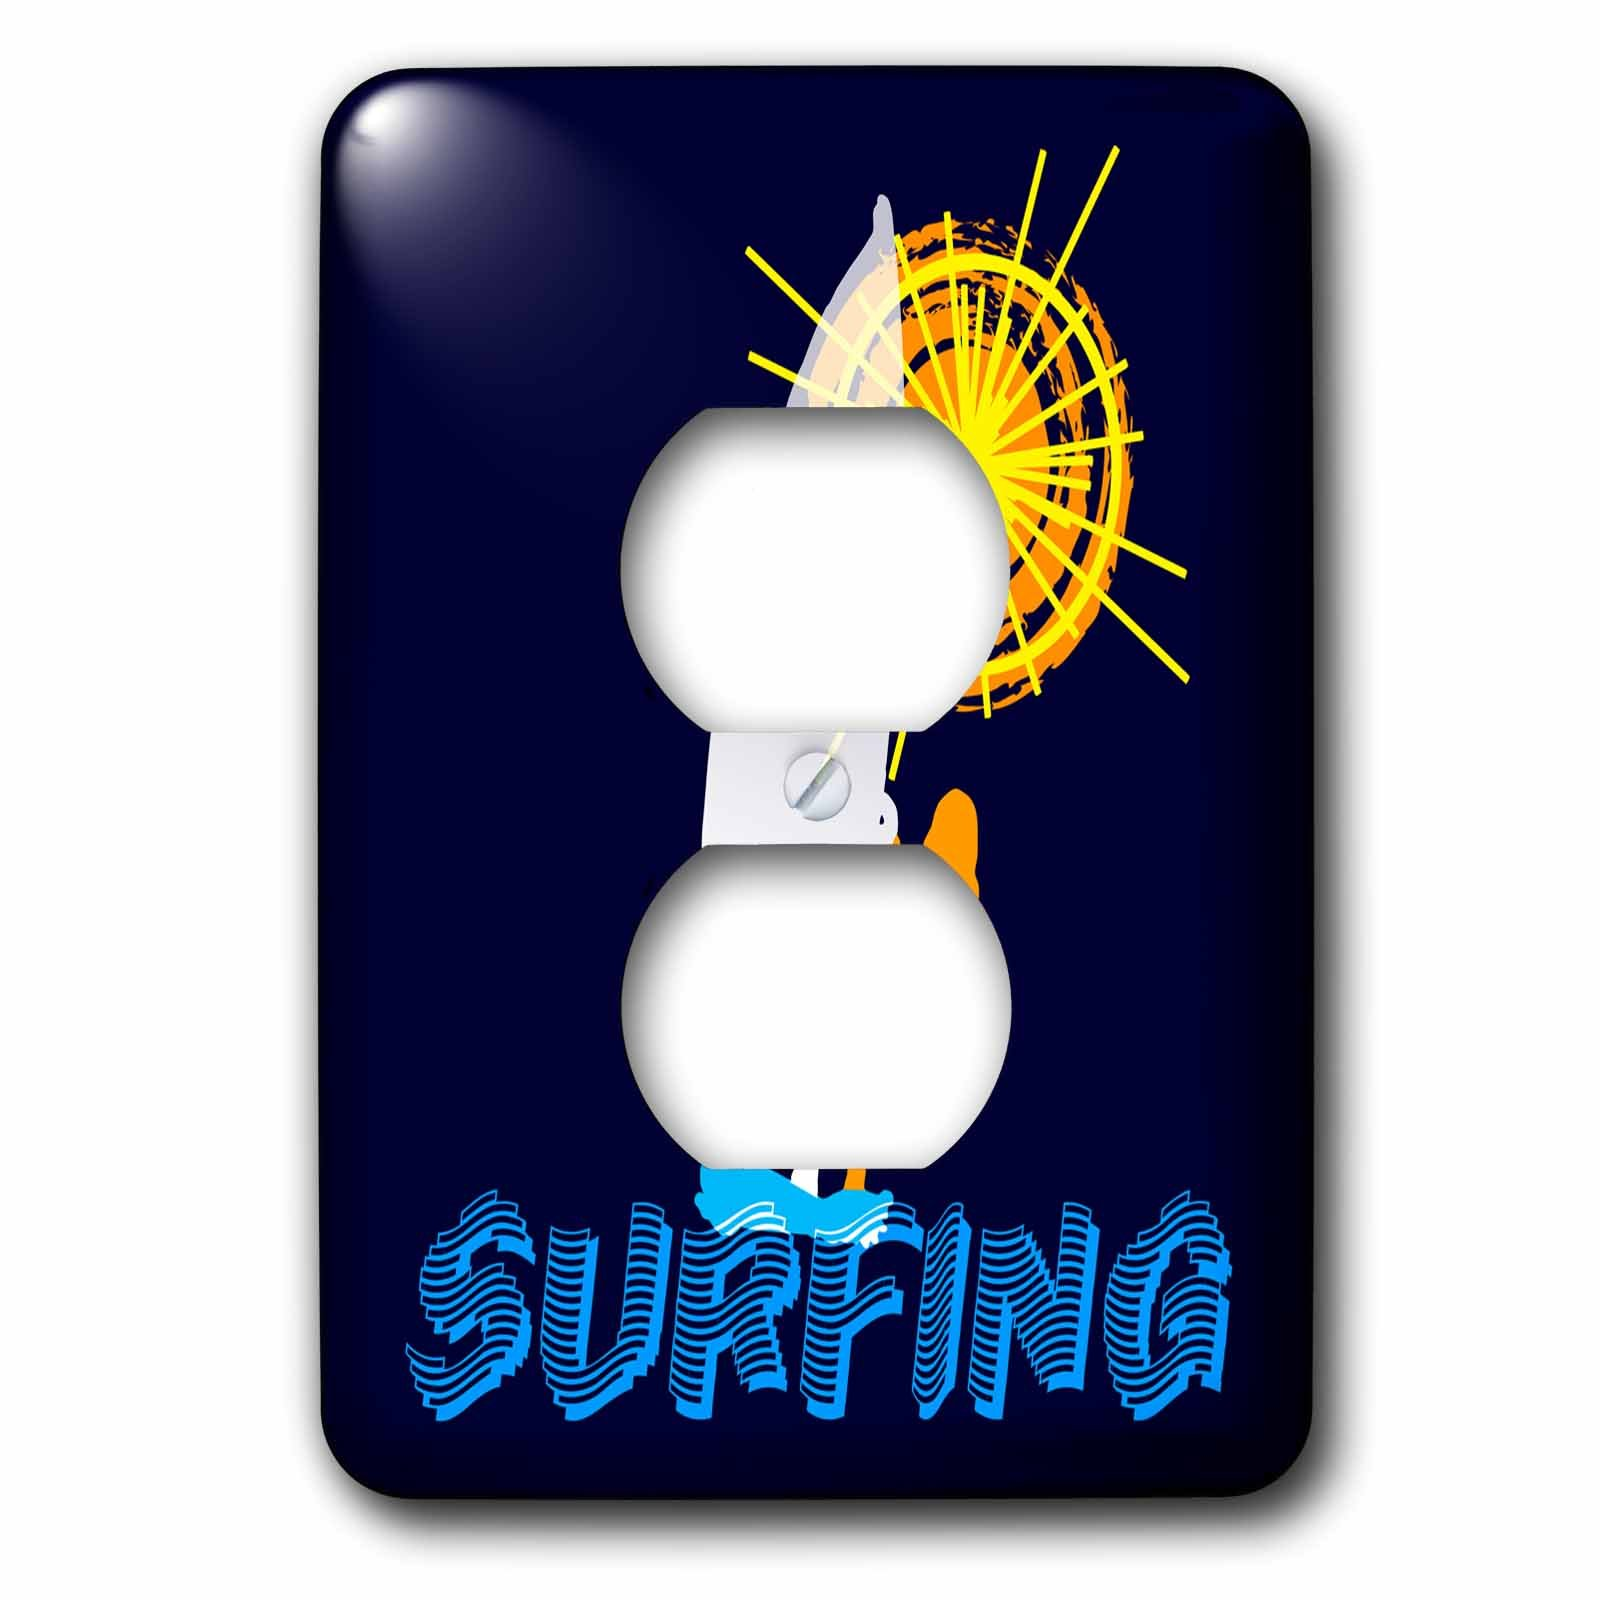 3dRose Alexis Design - Beach, Sea, Surf - Woman wind surfer, text SURFING, orange sun. Space for custom text - Light Switch Covers - 2 plug outlet cover (lsp_271764_6)